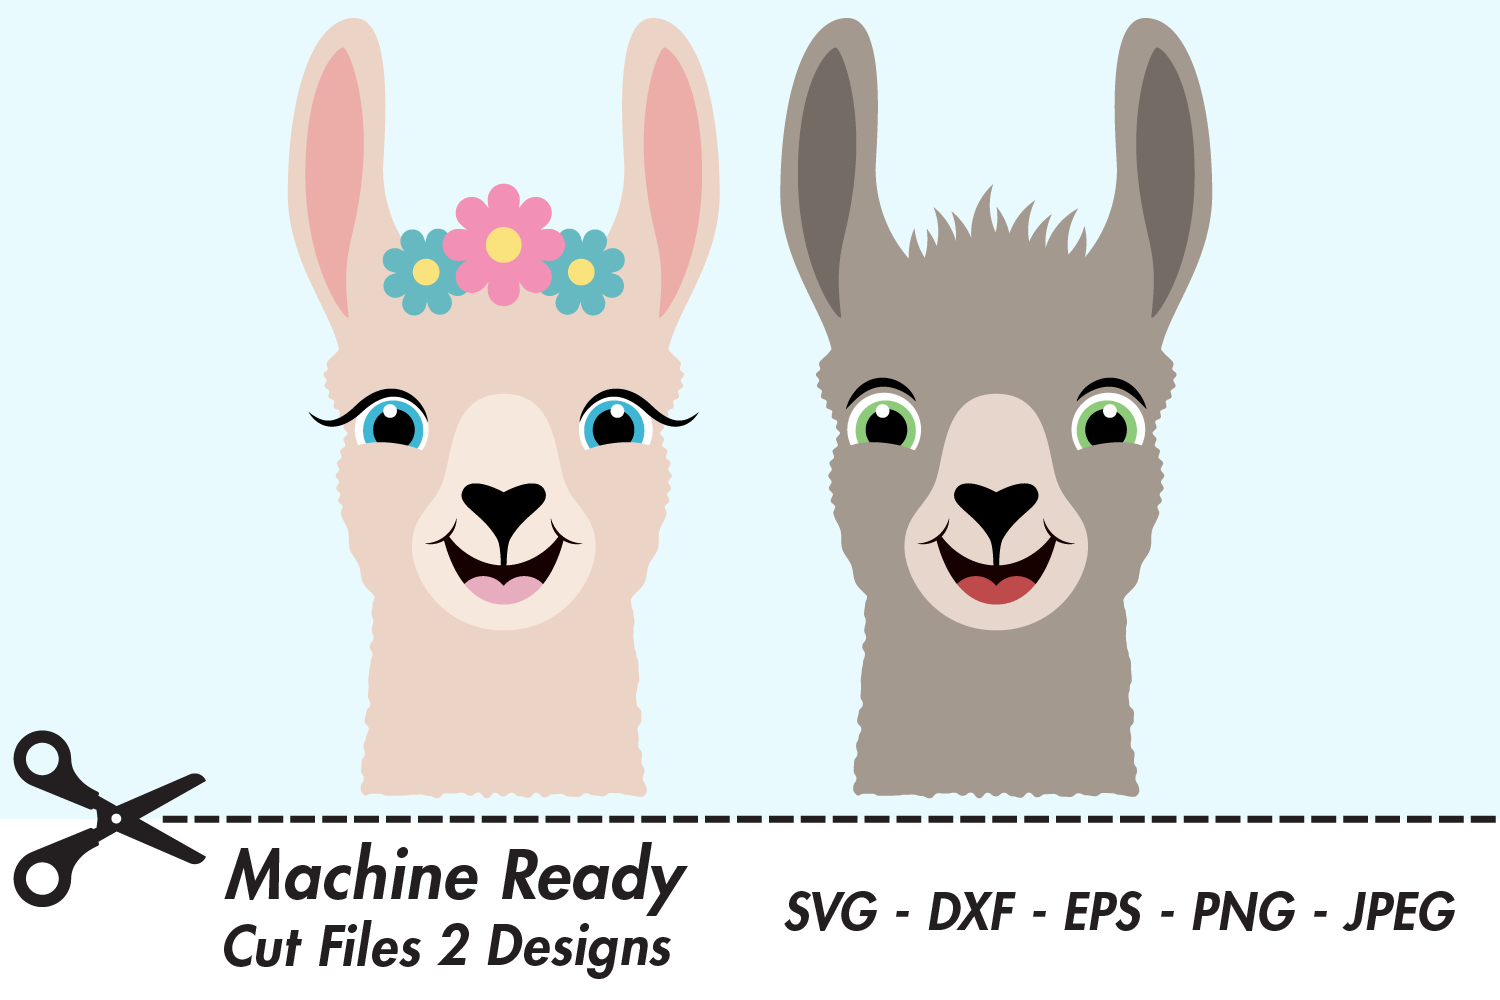 Download Free Cute Llama Faces Graphic By Captaincreative Creative Fabrica for Cricut Explore, Silhouette and other cutting machines.